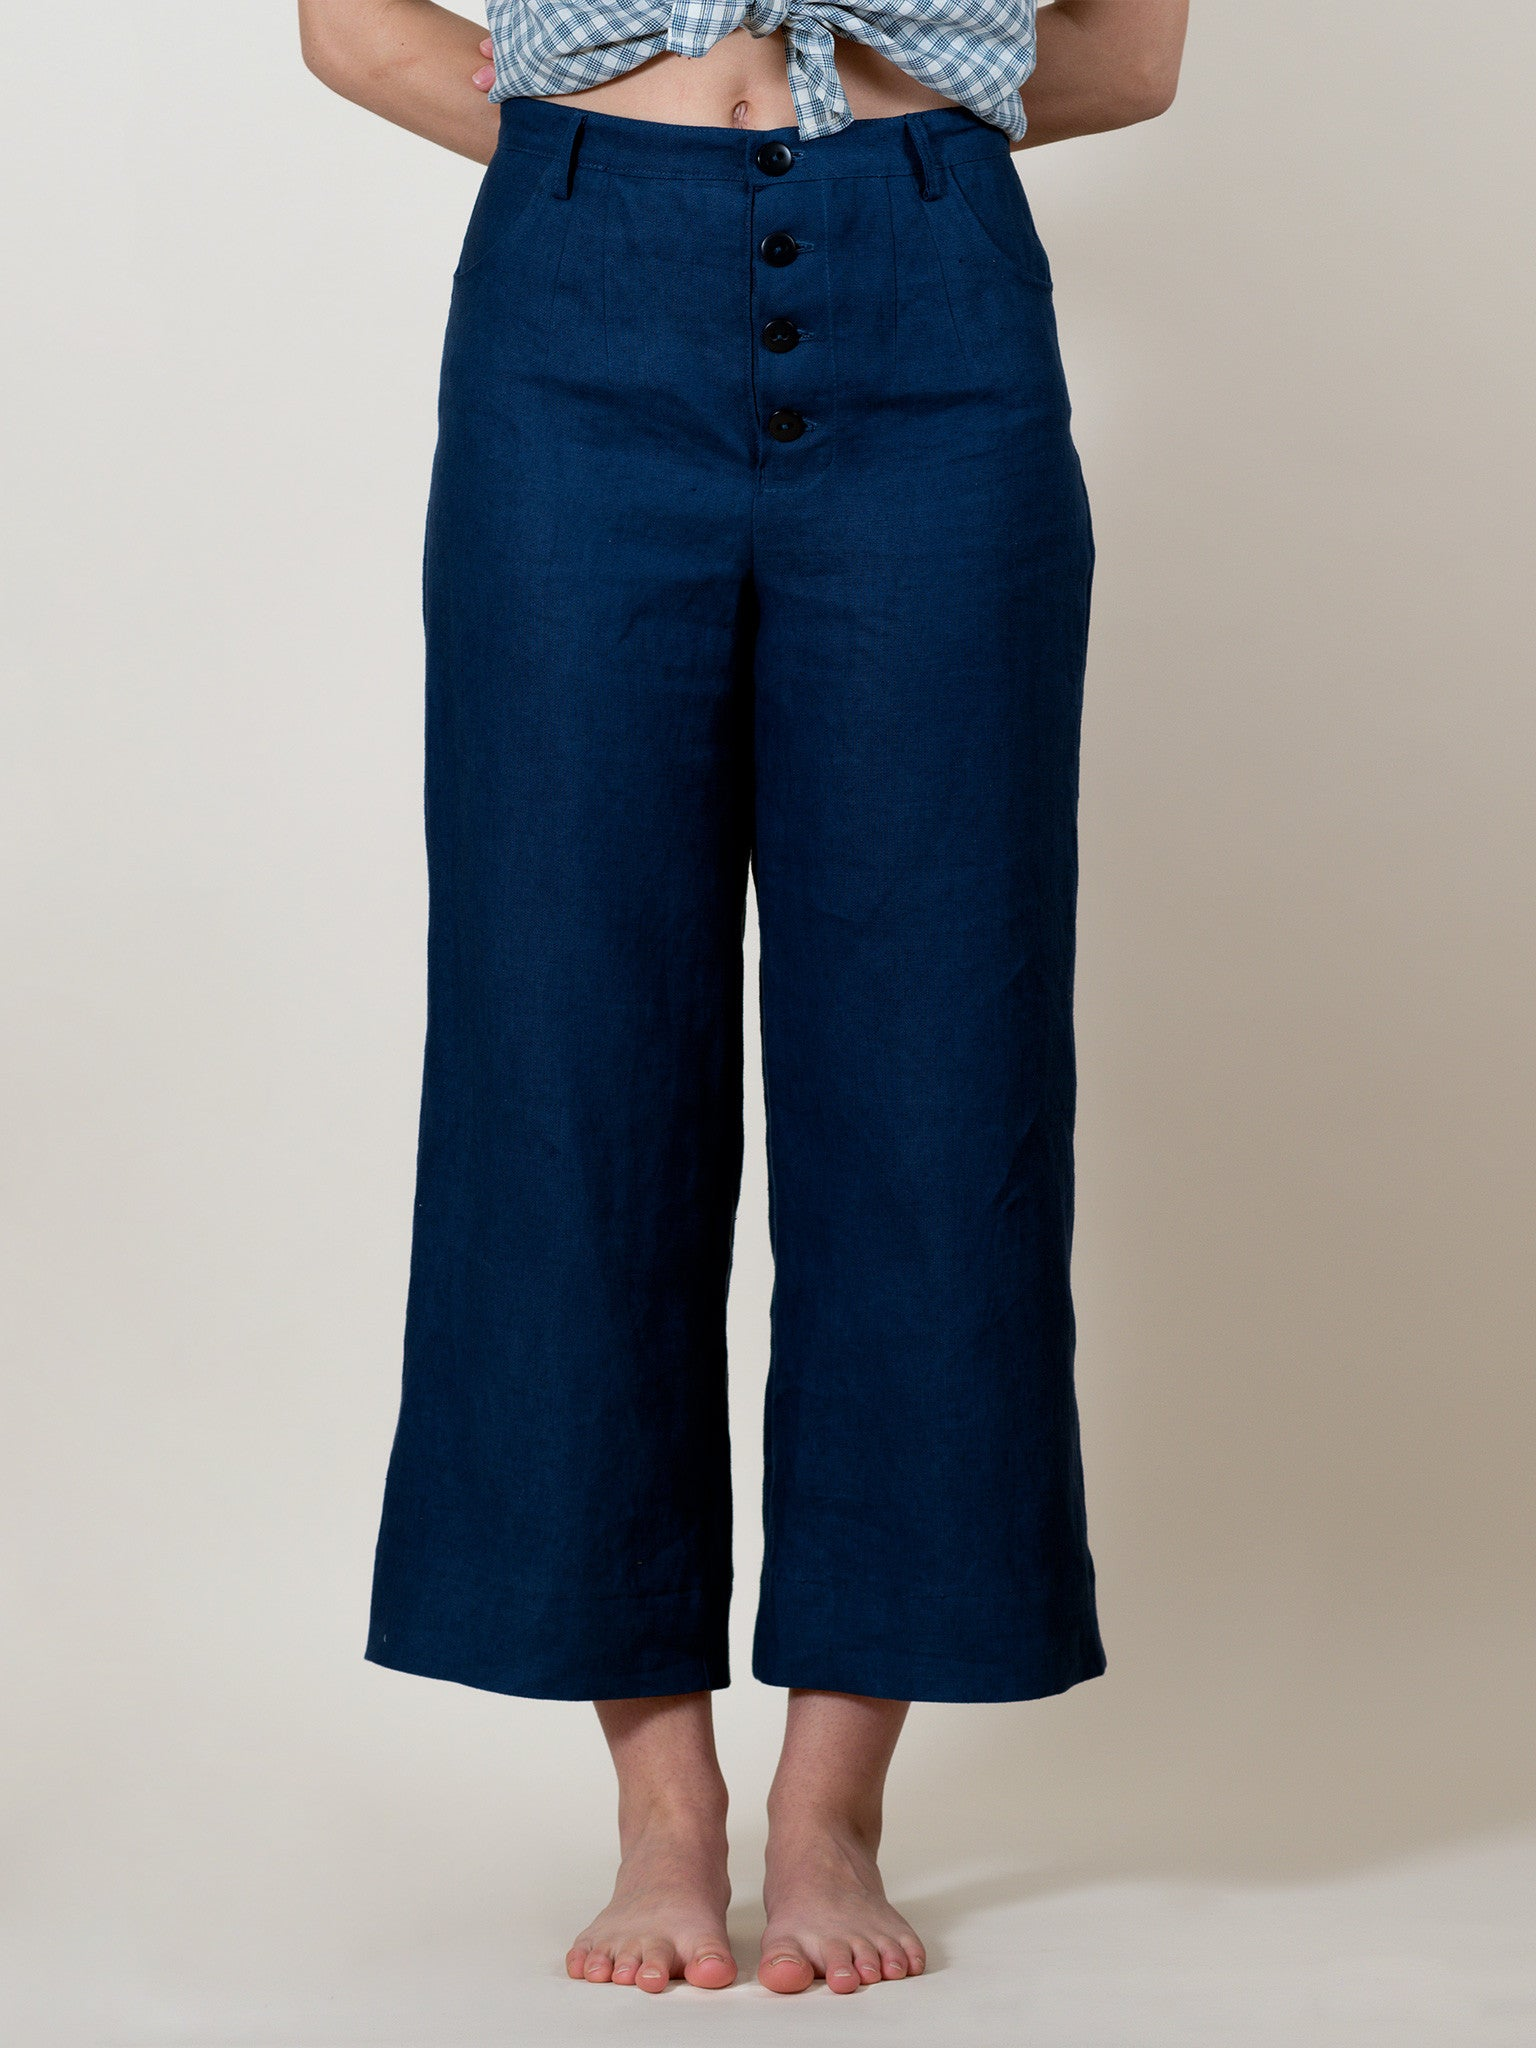 Sawyer Pants in Blueberry Linen